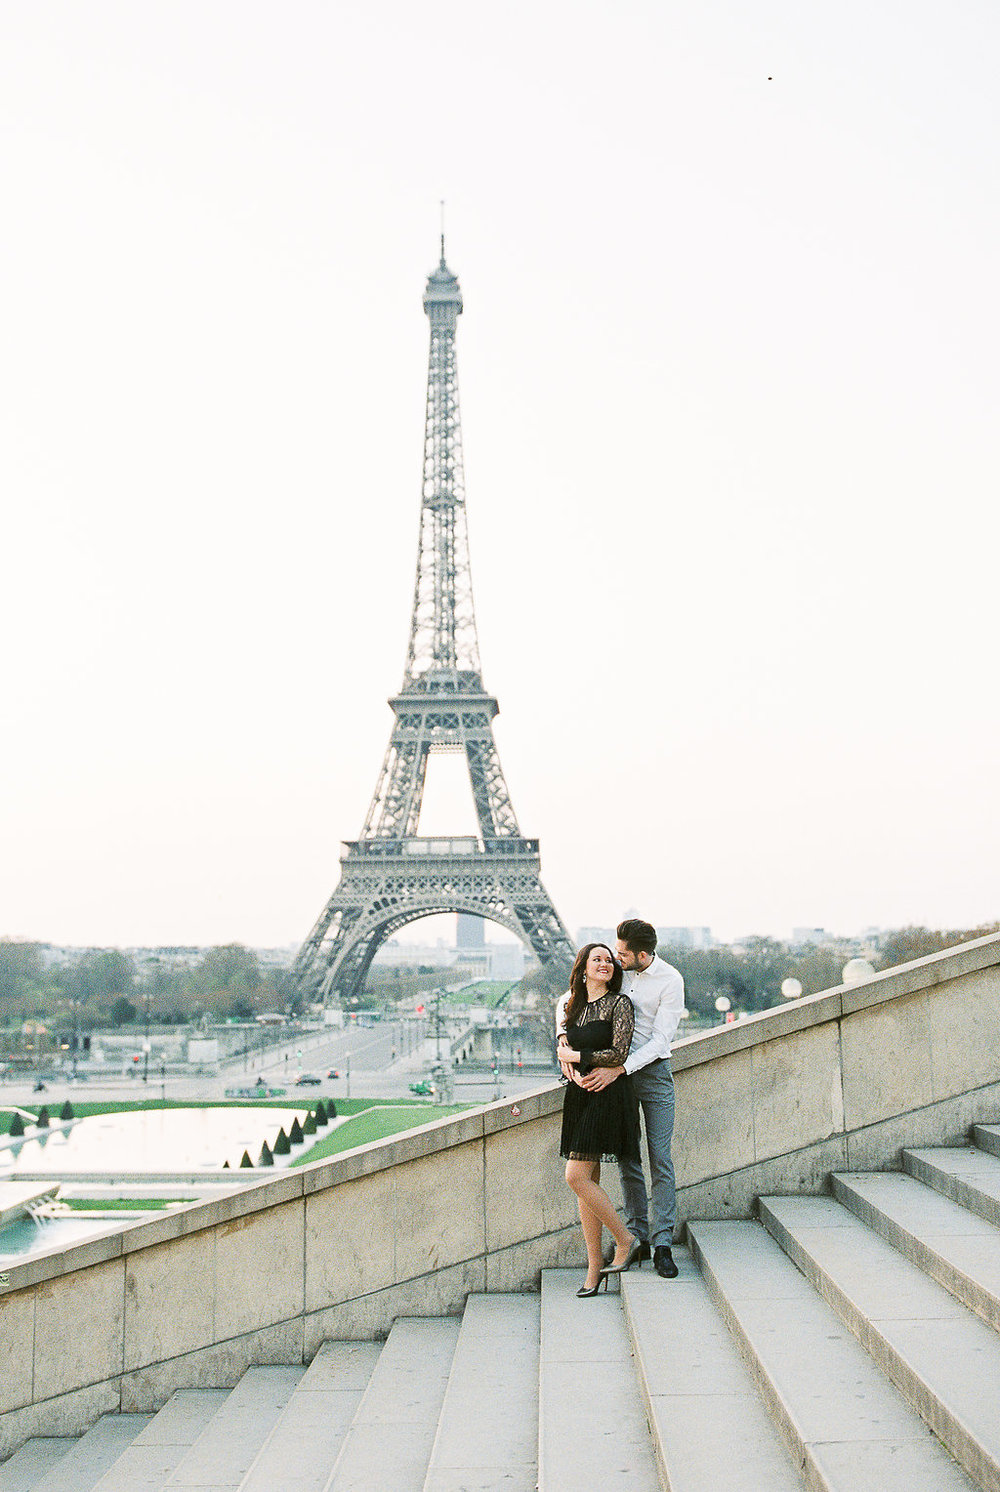 Germany fine art film wedding photographer | Kibogo Photography | Paris engagement session2.JPG